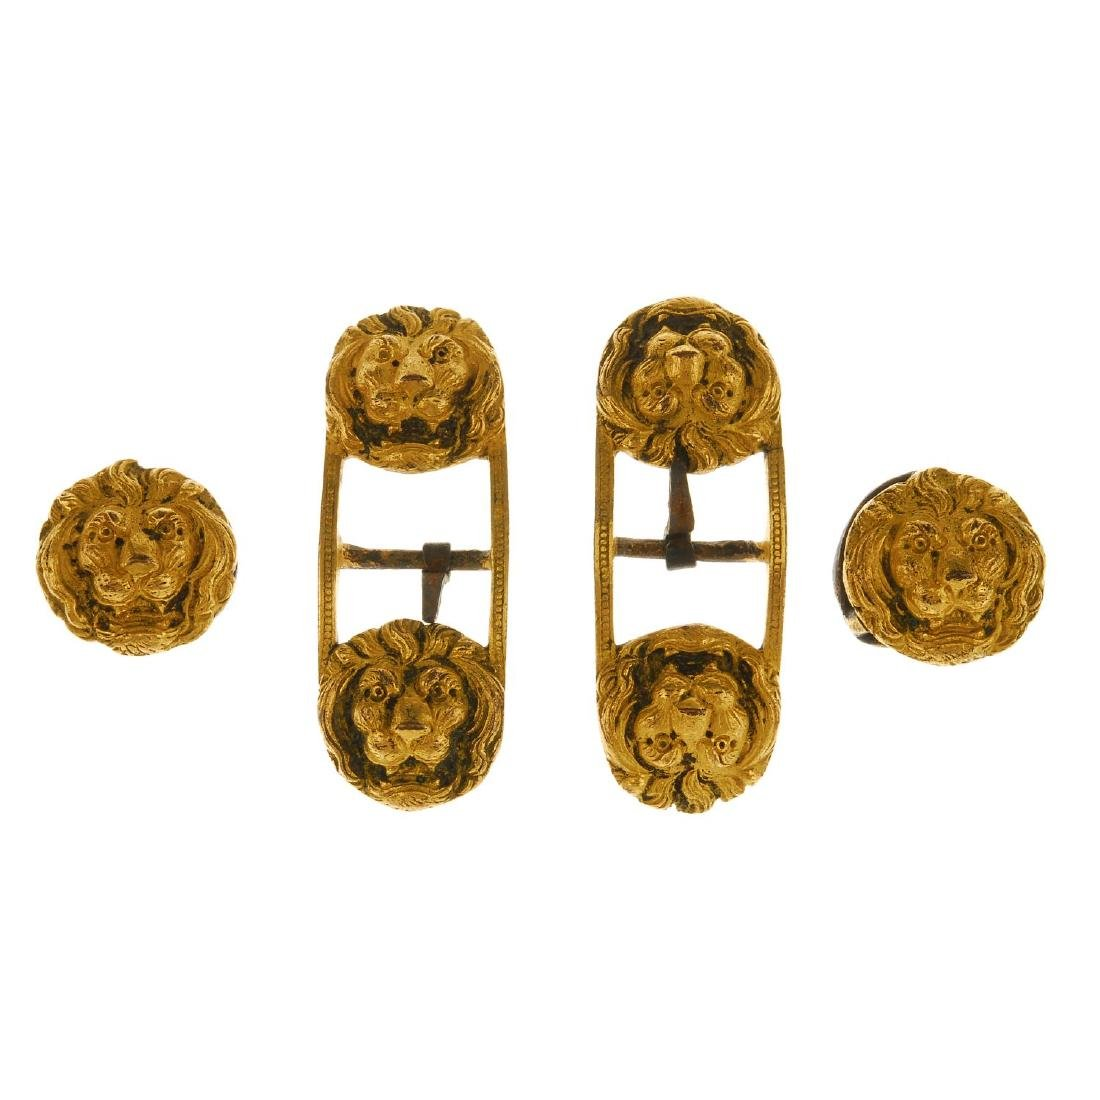 Four lion head buckles. The larger buckles designed as